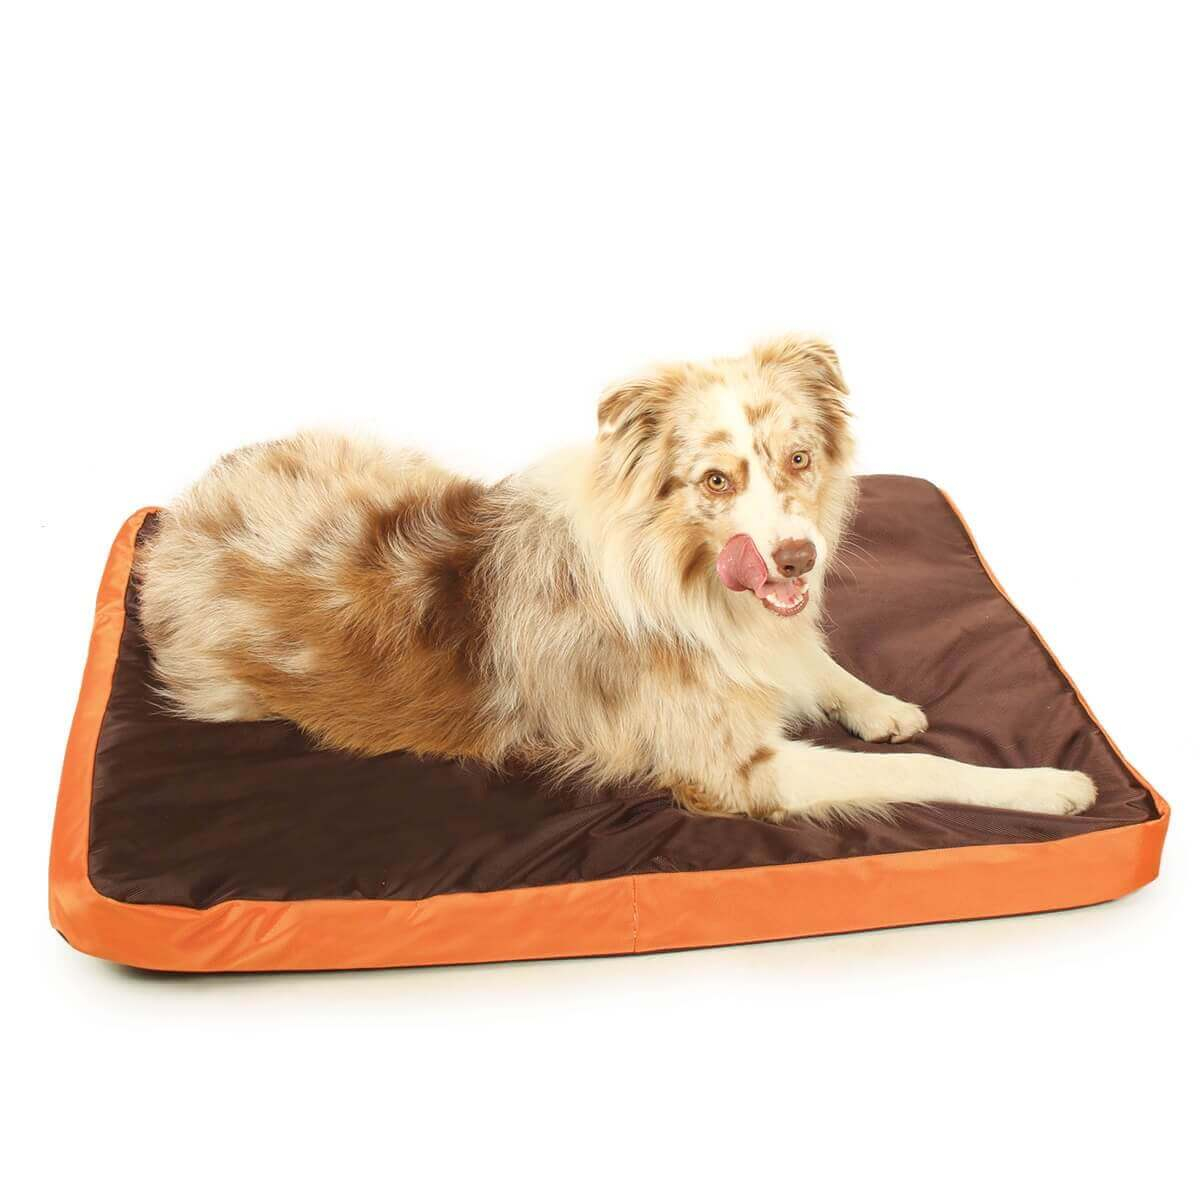 matelas relax dog bicolore imperm able 100cm pour chien coussin et tapis. Black Bedroom Furniture Sets. Home Design Ideas